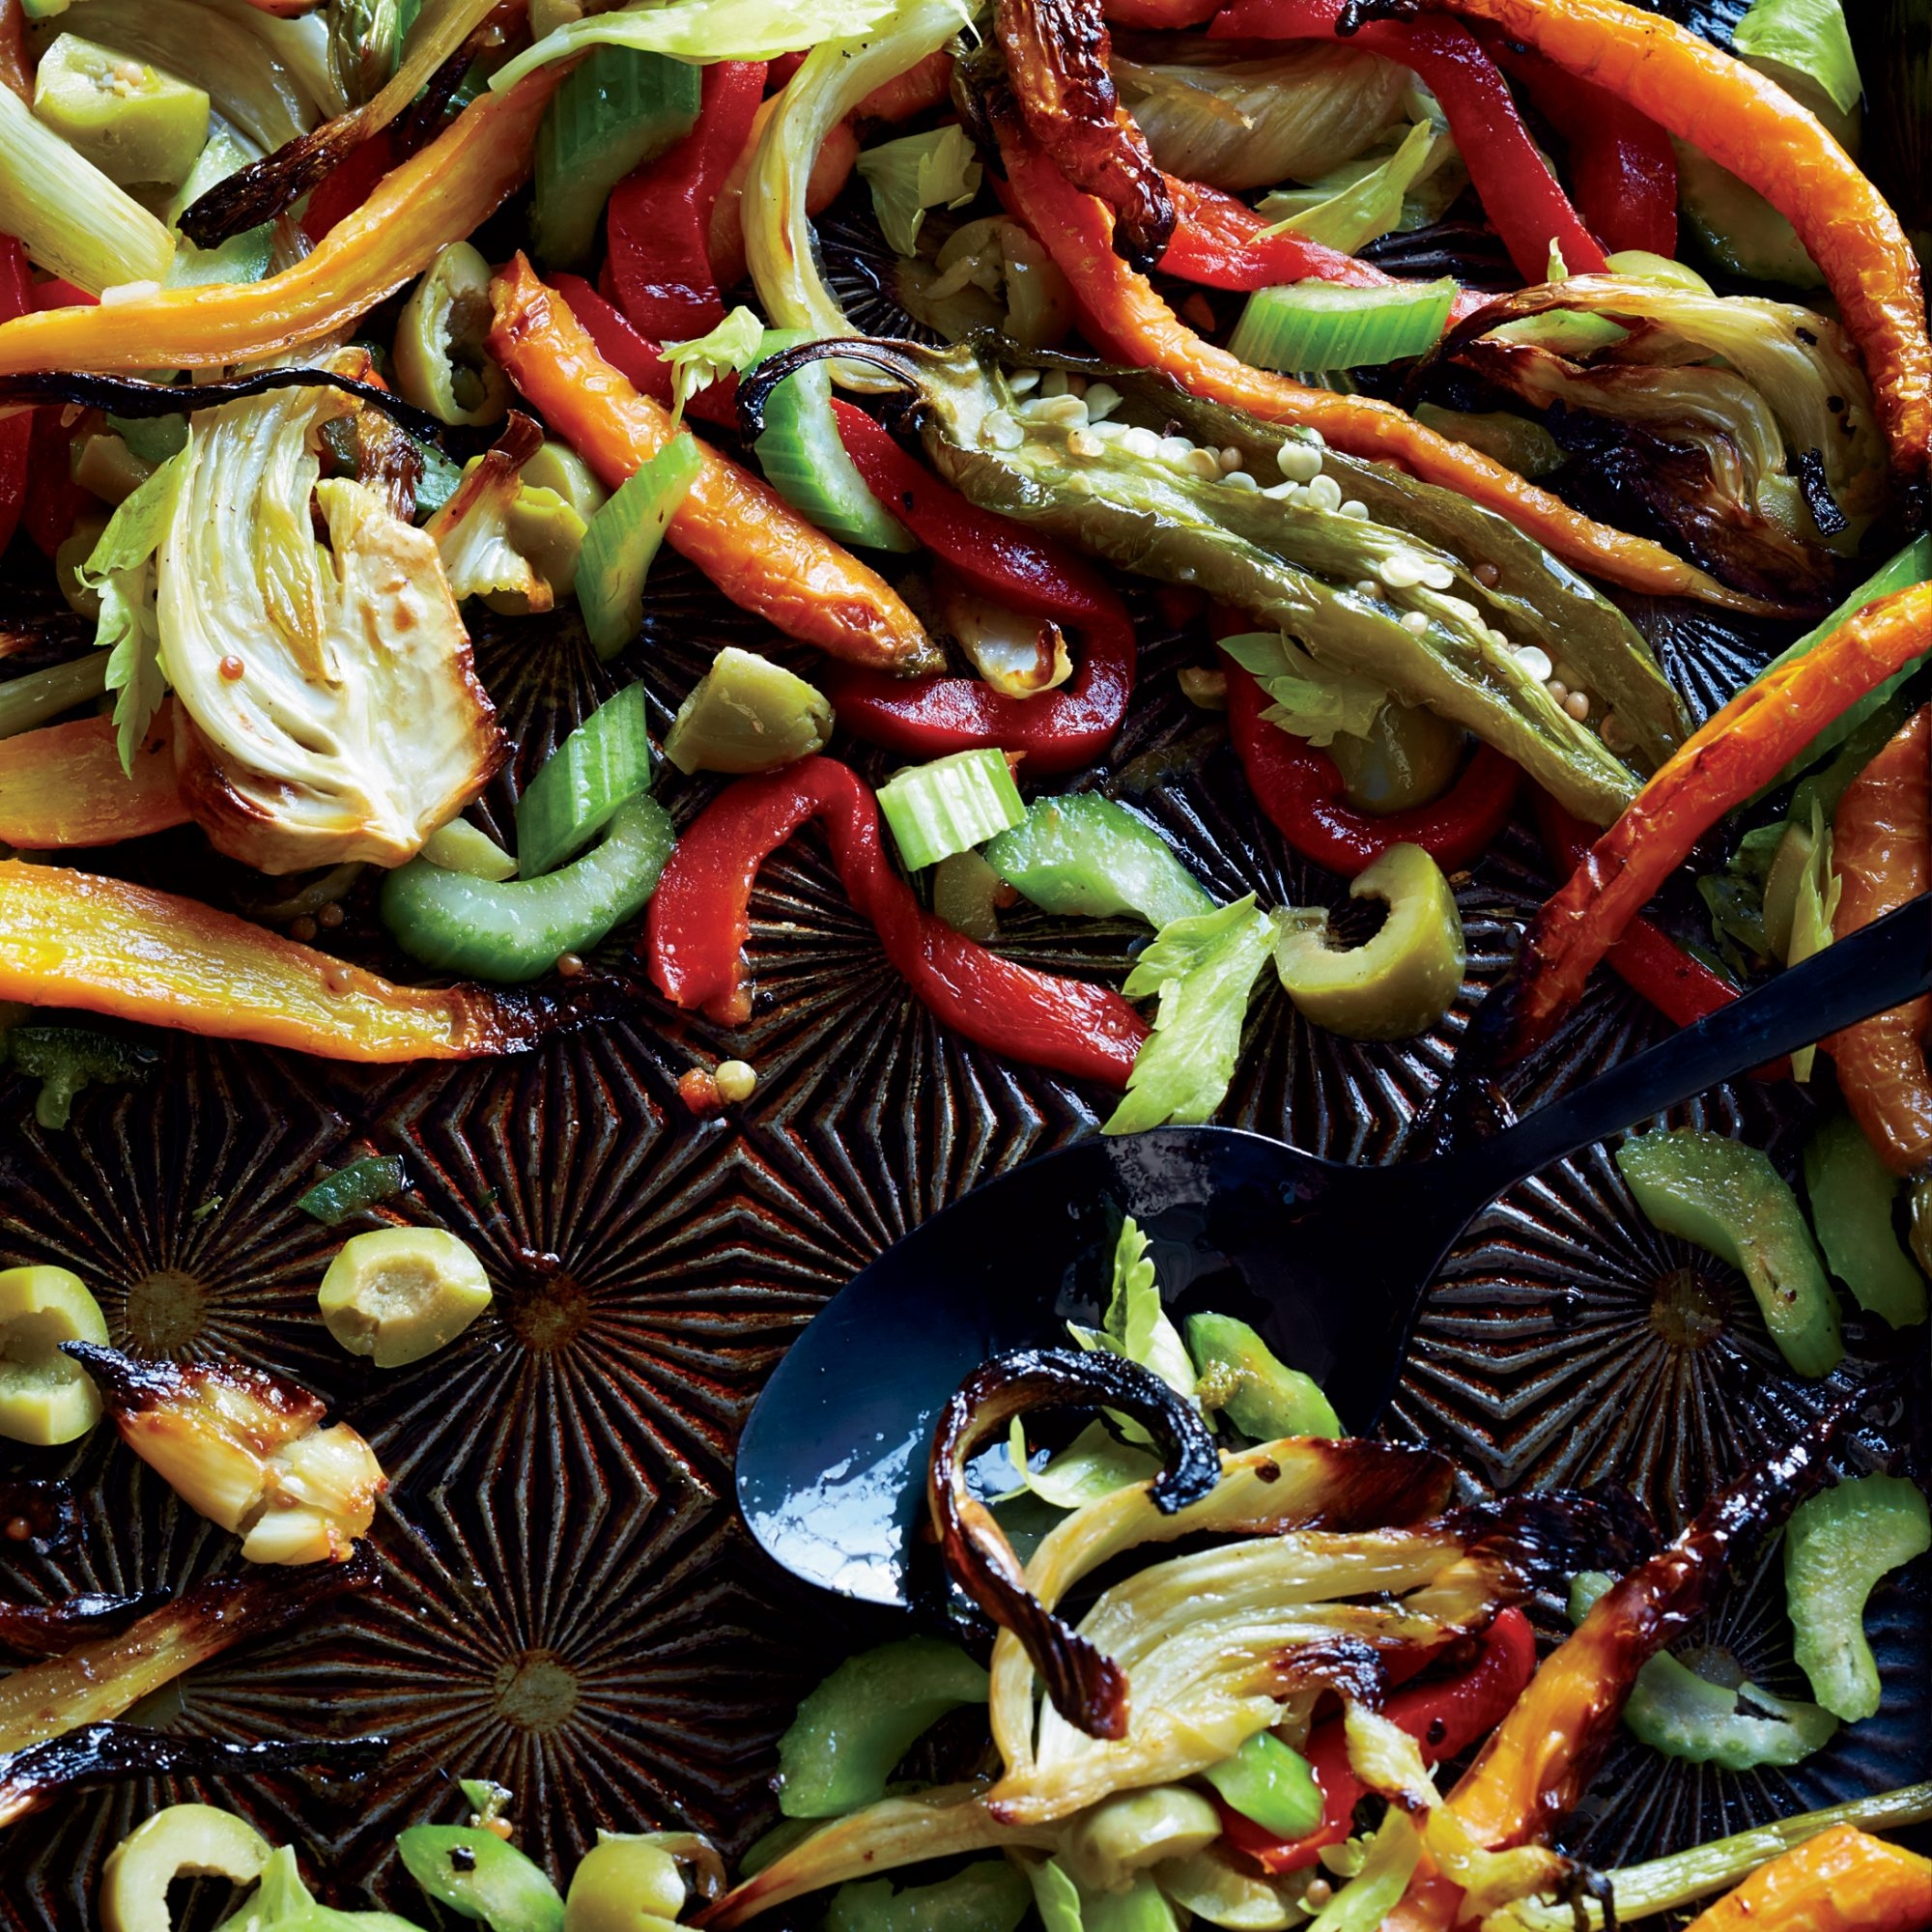 Giardiniera-Style Roasted Vegetables